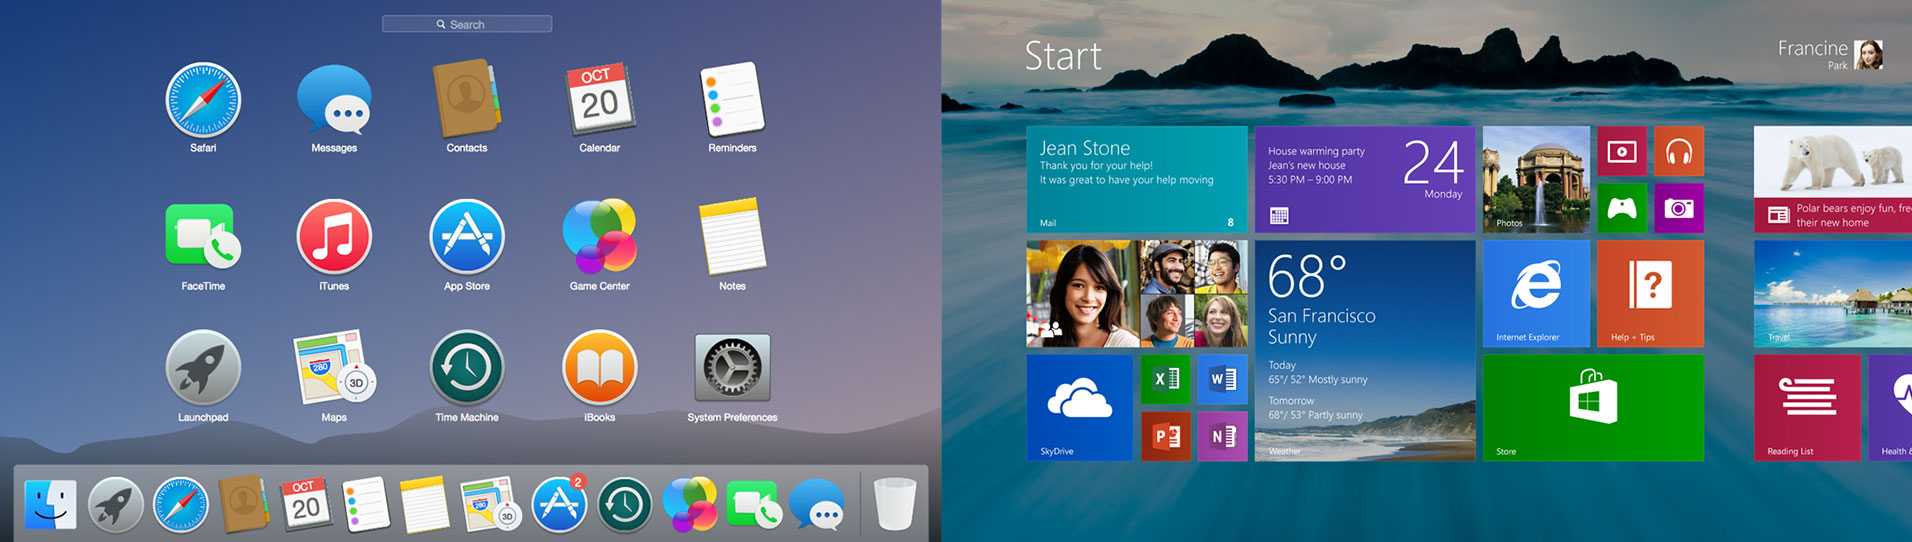 User Interface van iOS startpagina versus Windows 10 startpagina